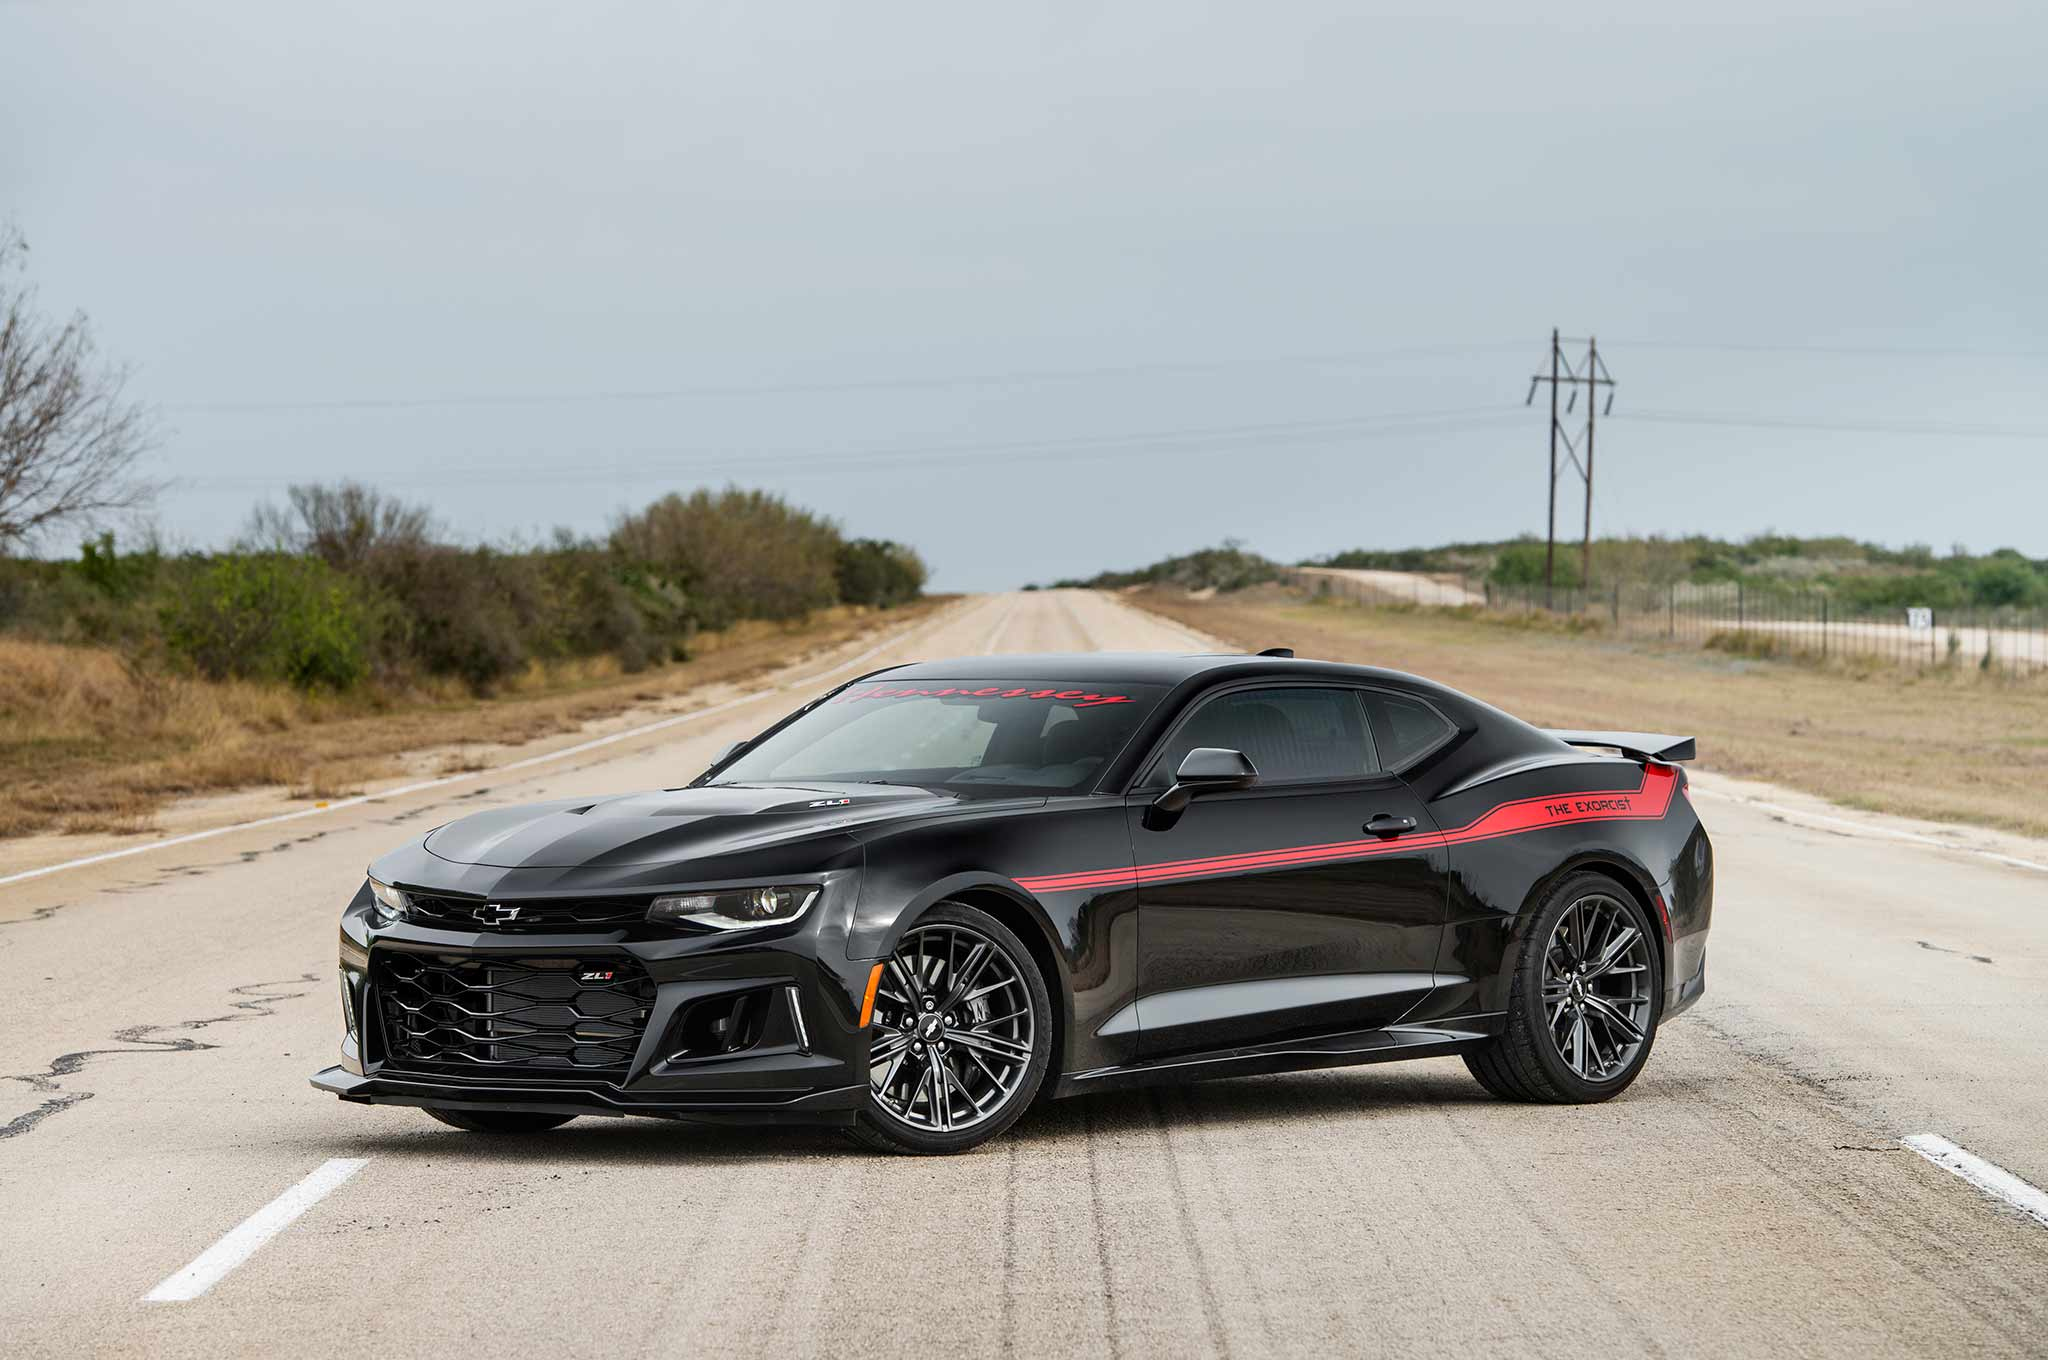 Hennessey Exorcist Camaro ZL1 Hits 217 MPH in New Video ...